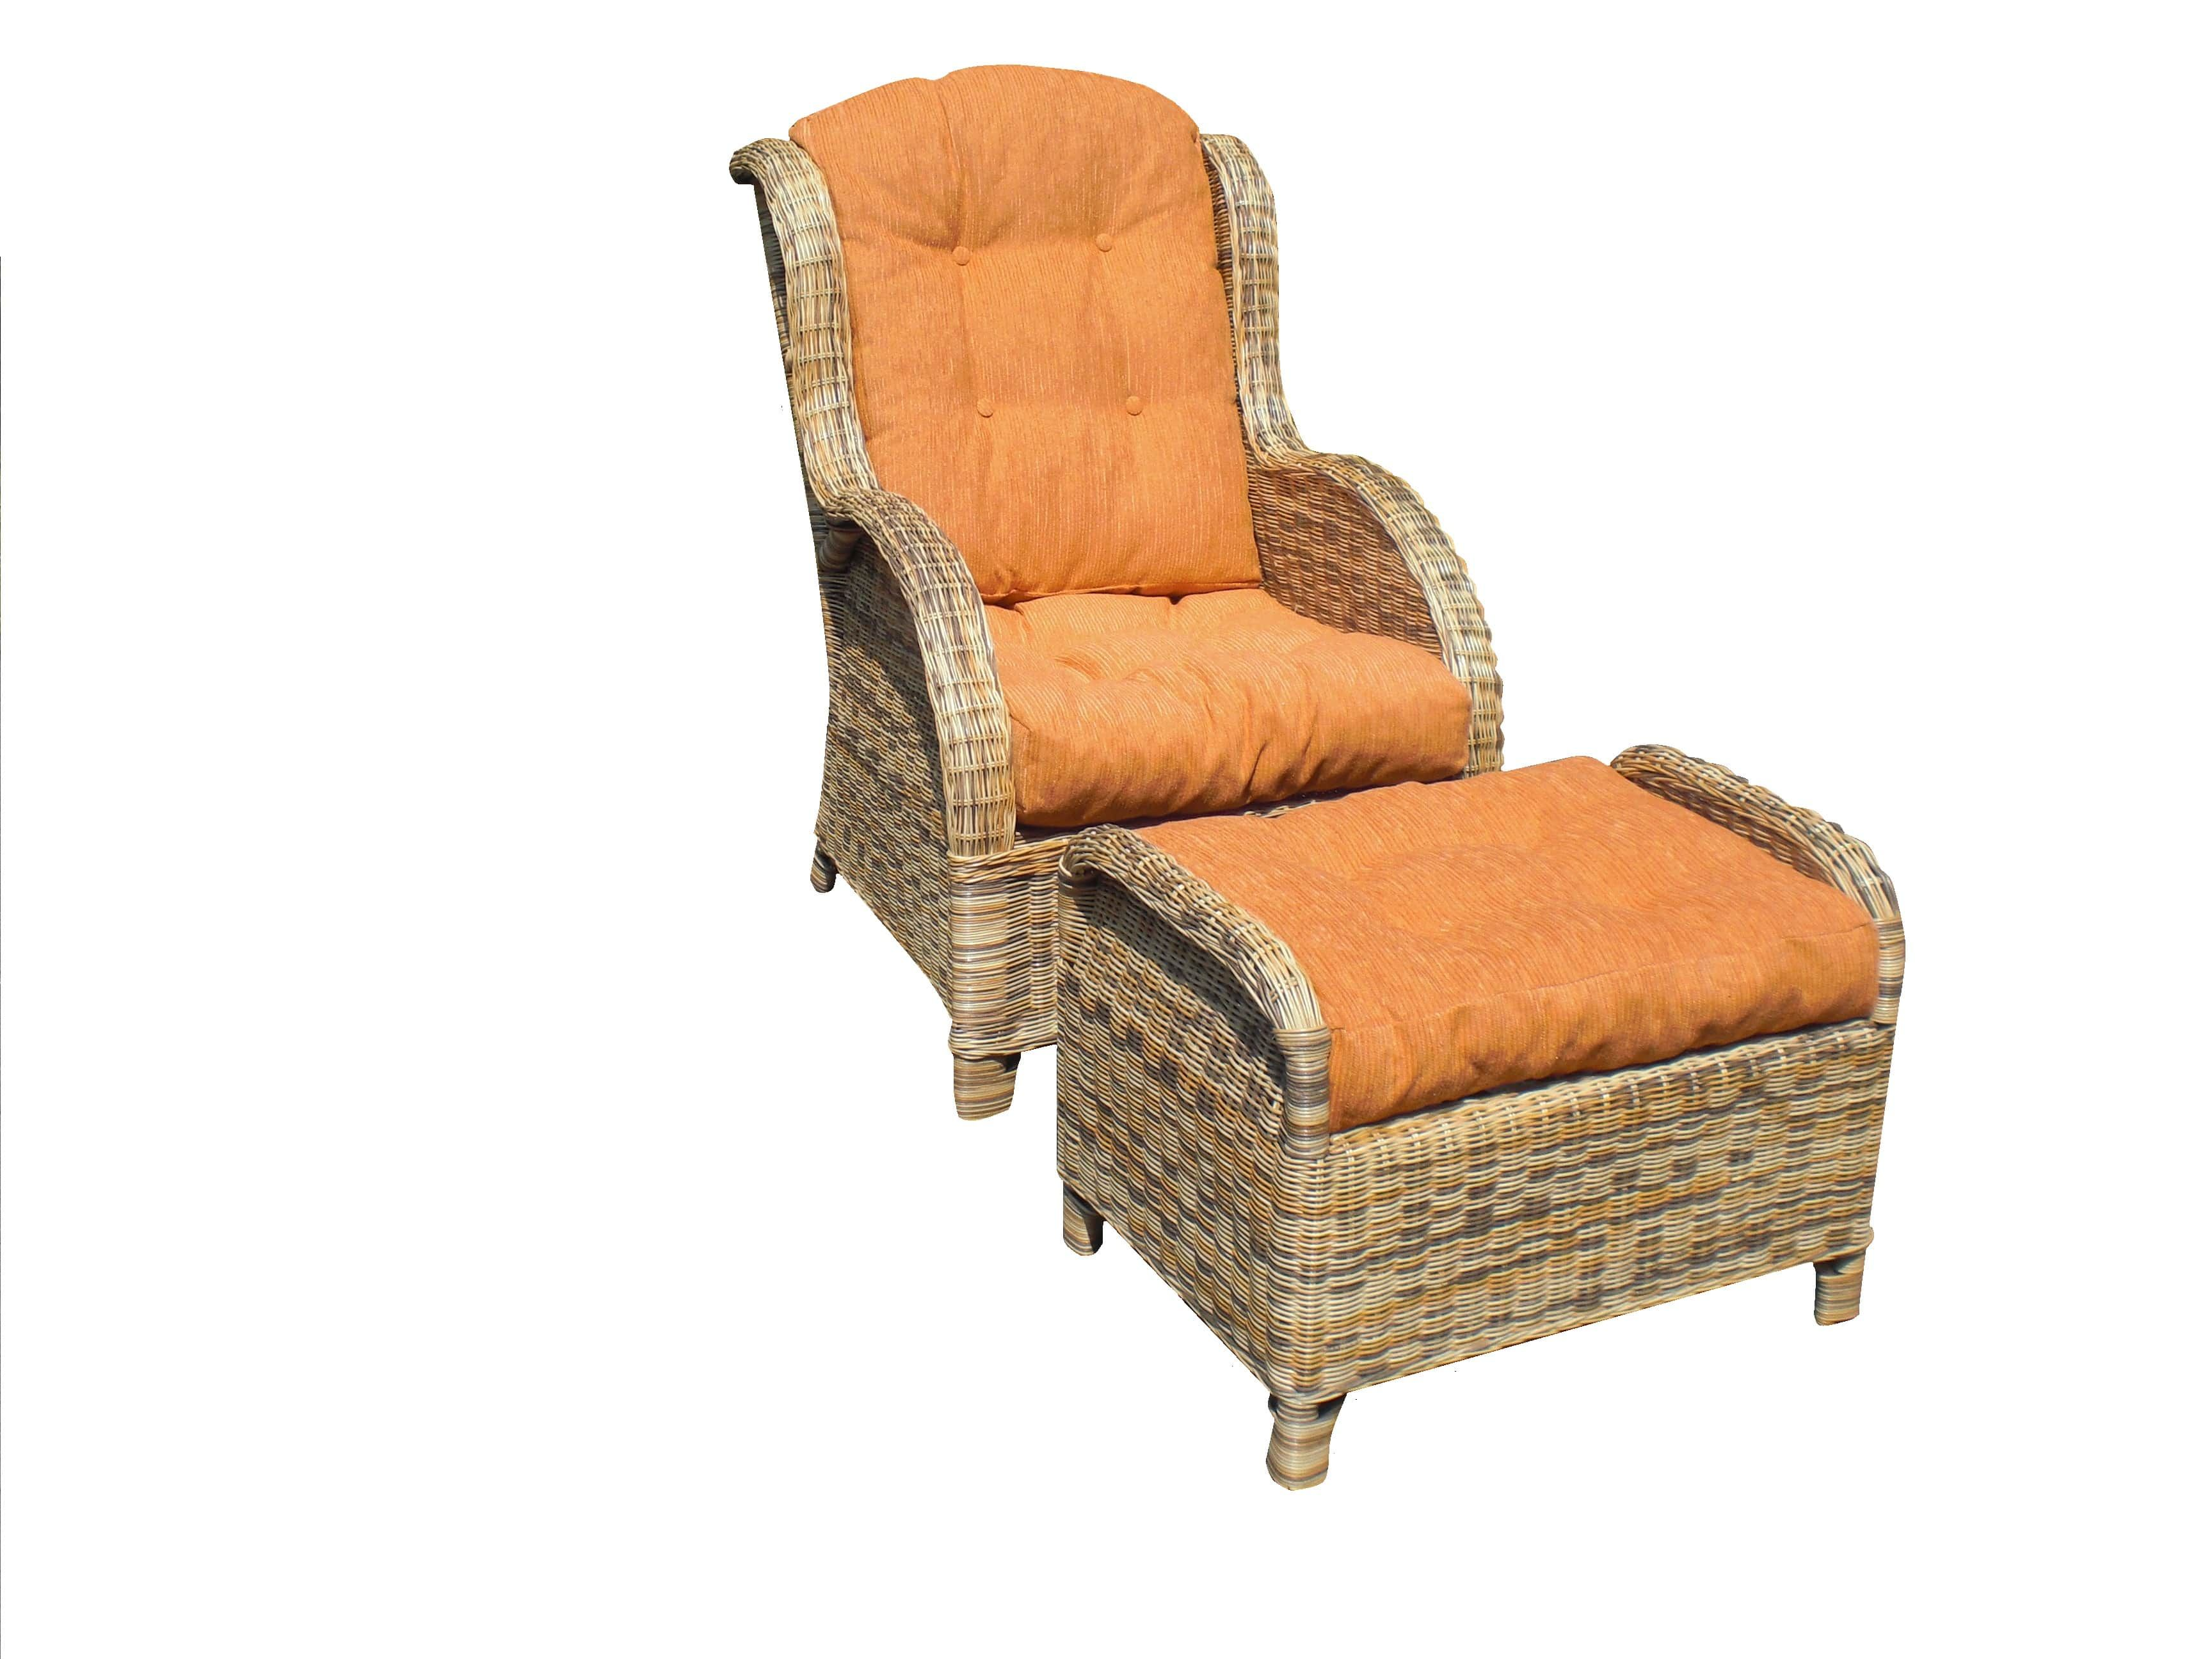 Types Of Living Room Chairs There Are Some Types Of Wicker Chair With Ottoman Furniture That